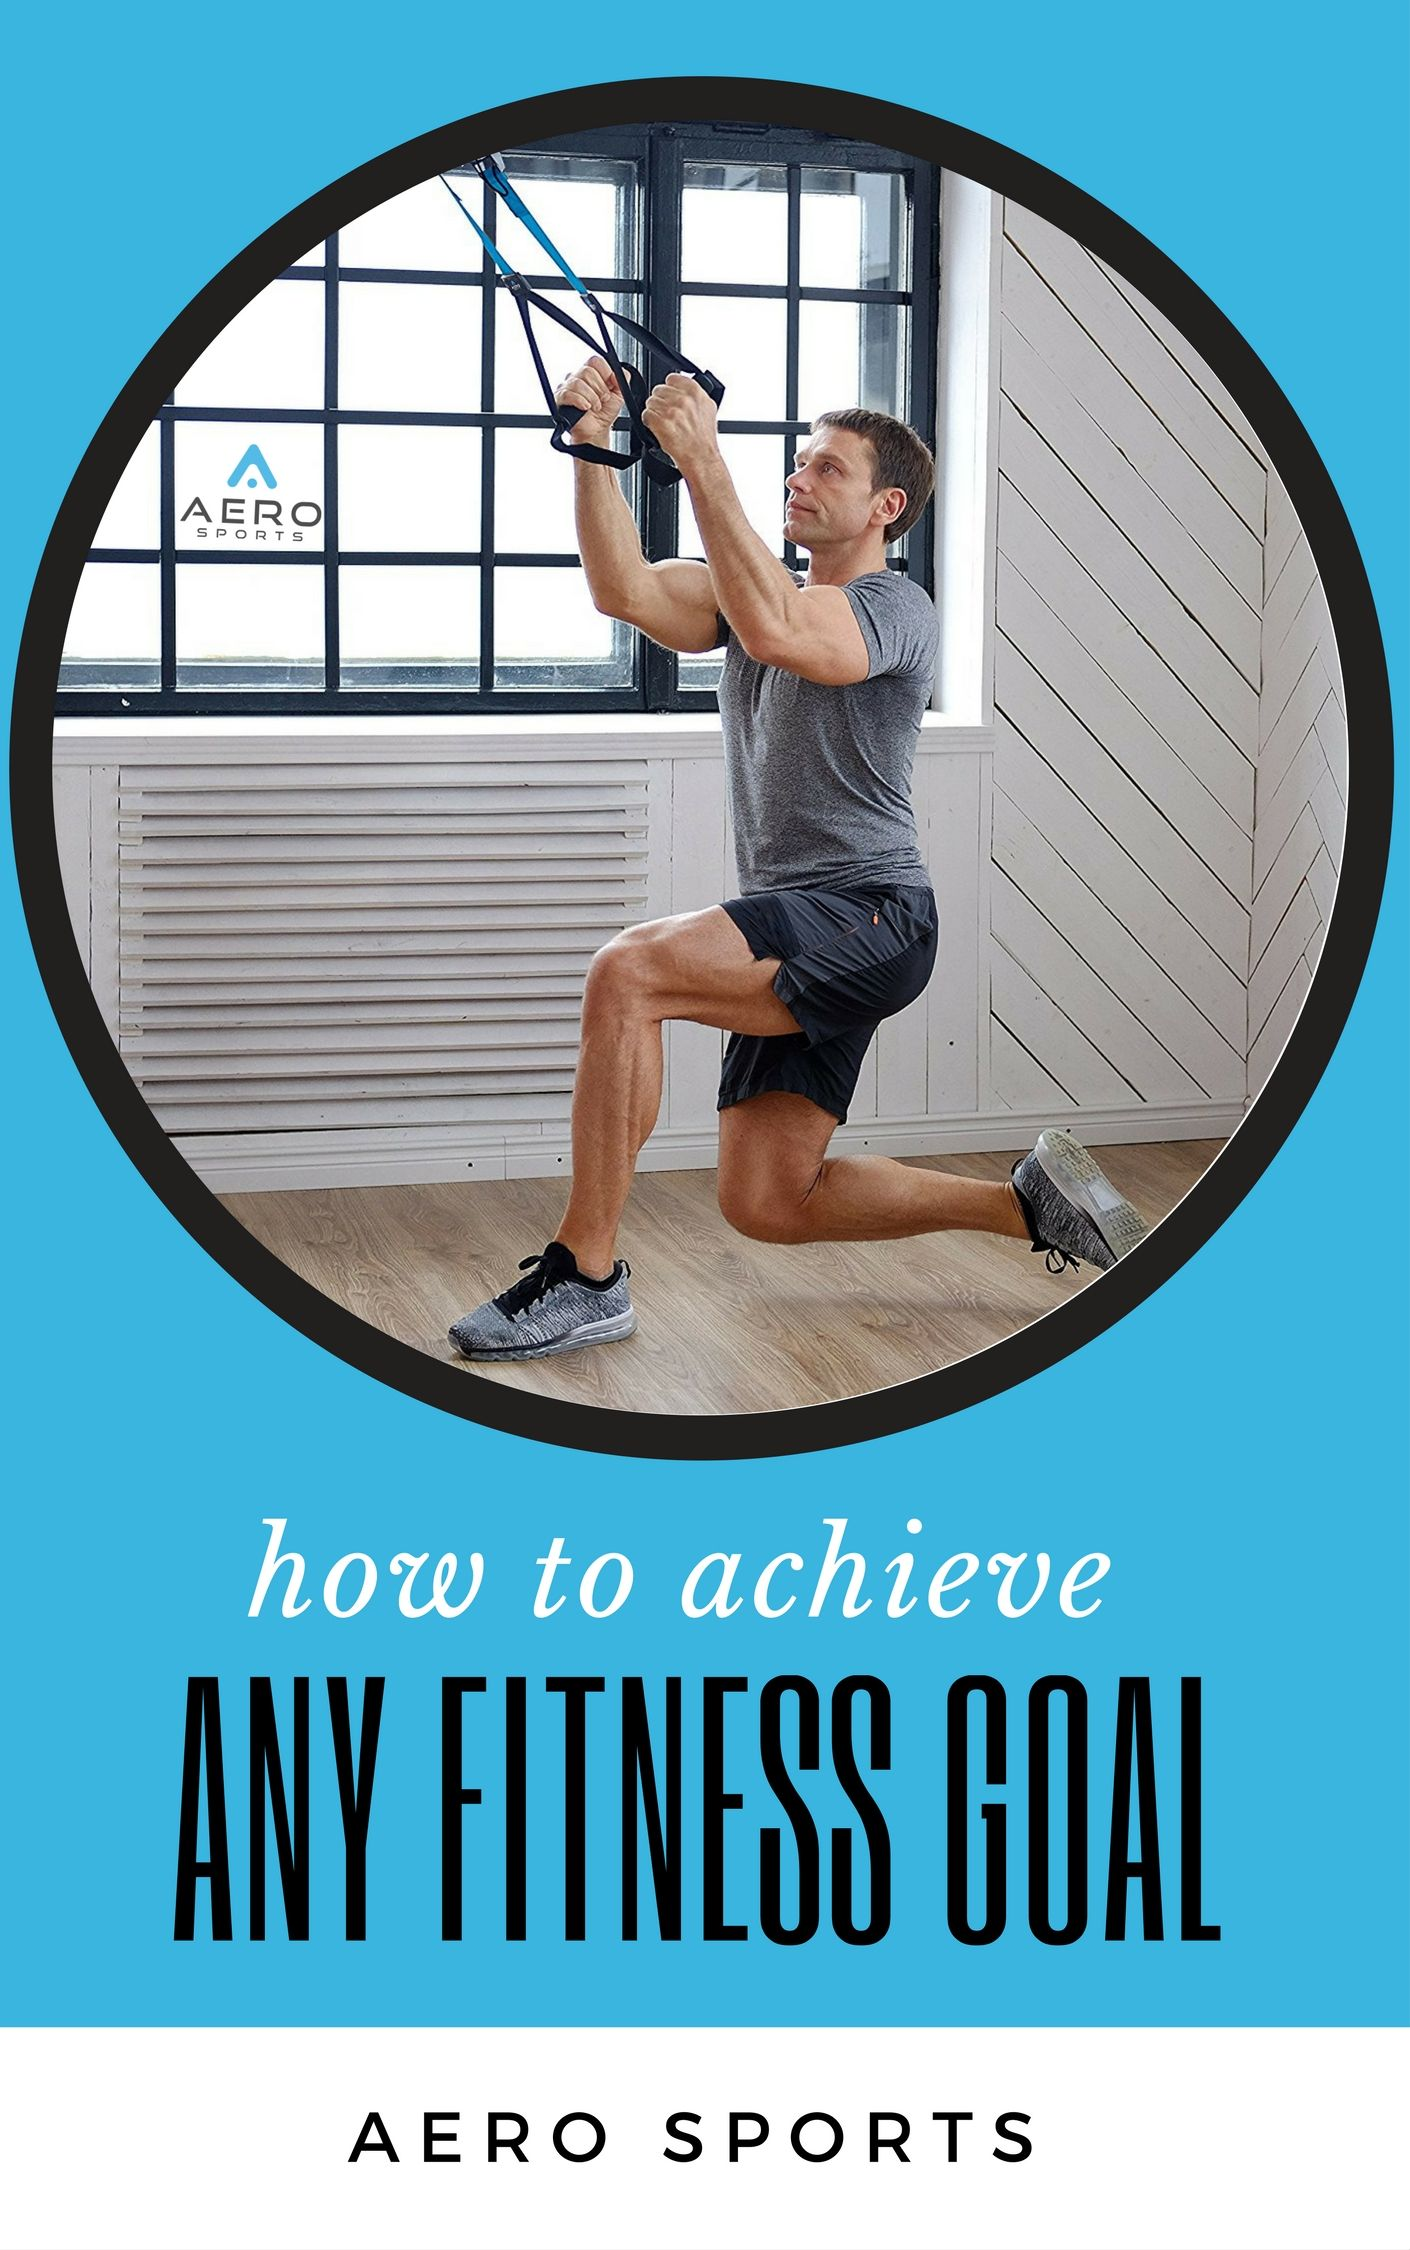 Our free fitness ebook is up for grabs on our website. Learn how to achieve any fitness goal you have in mind, take advantage of every workout and build muscle while burning fat! All with our suspension trainer.